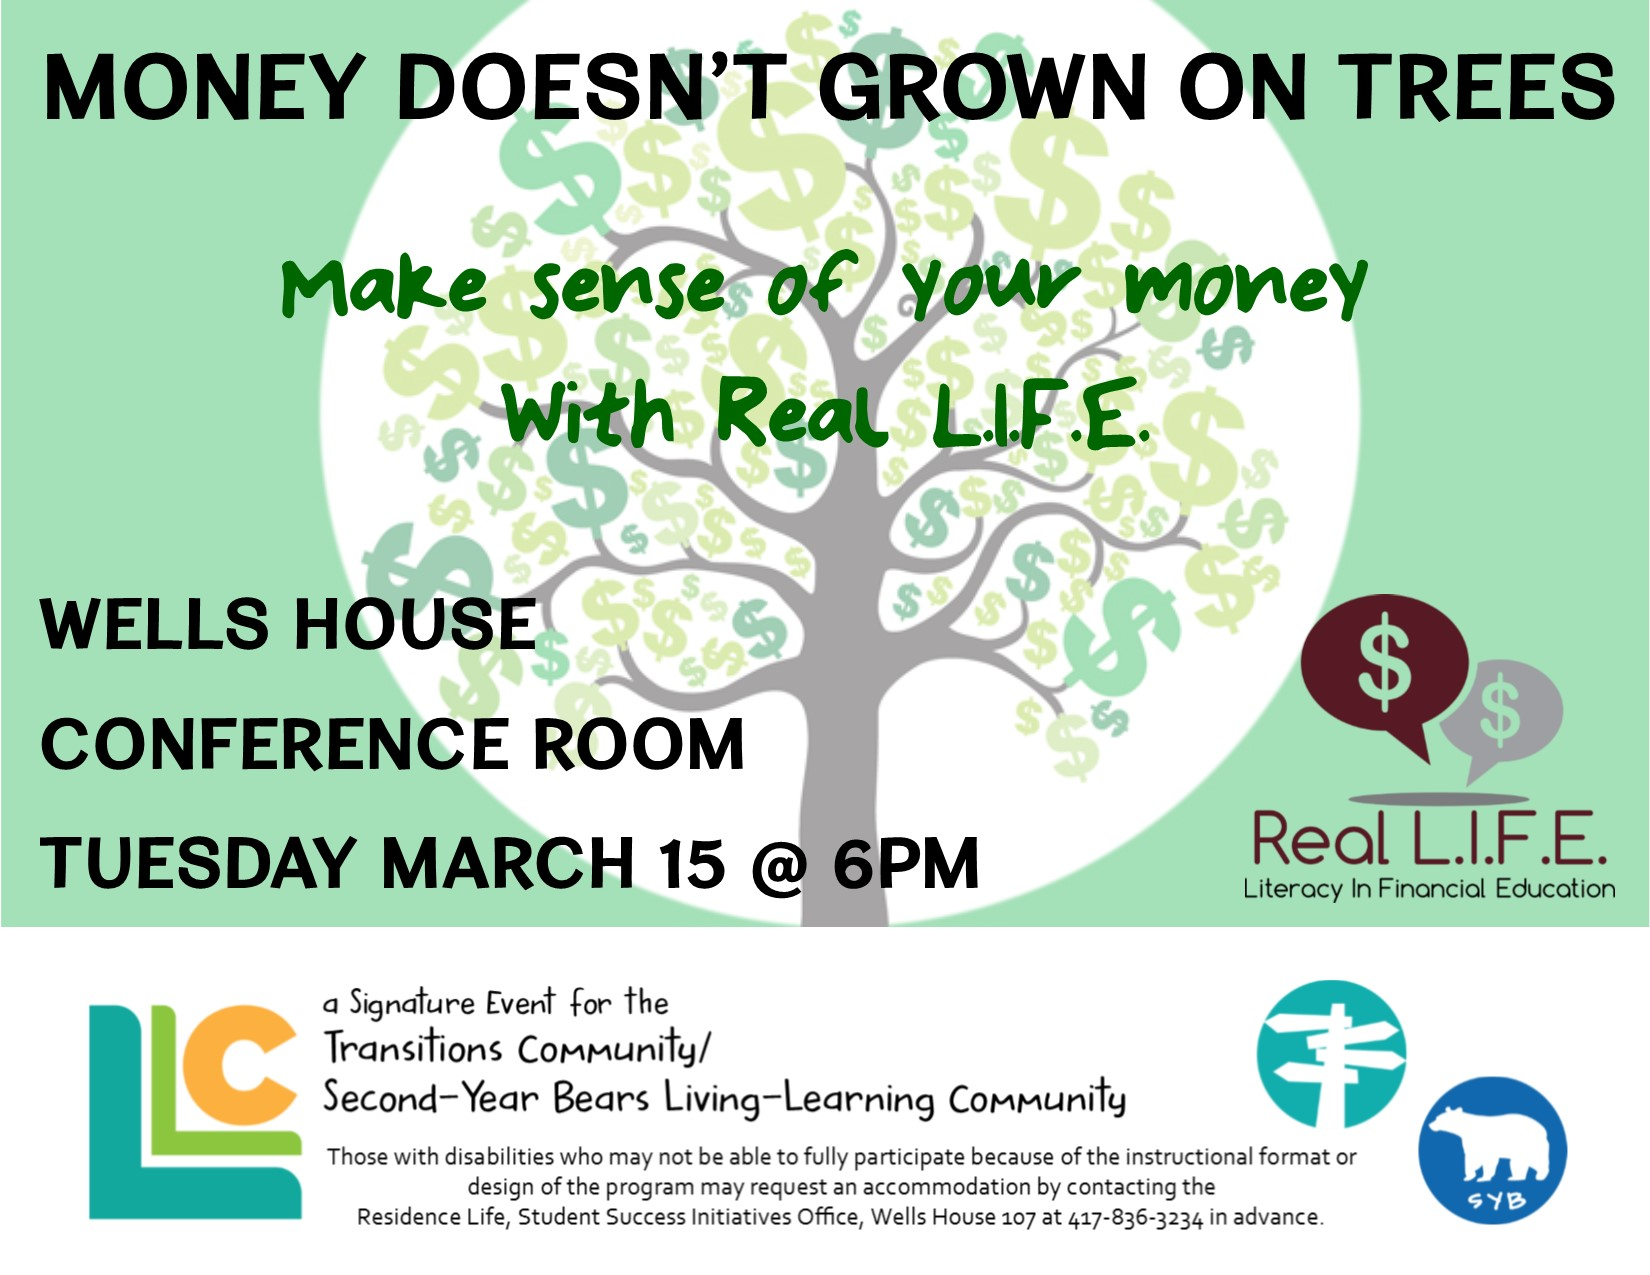 Transitions and Second-Year Bears Real L.I.F.E. Money Doesn't Grow on Trees